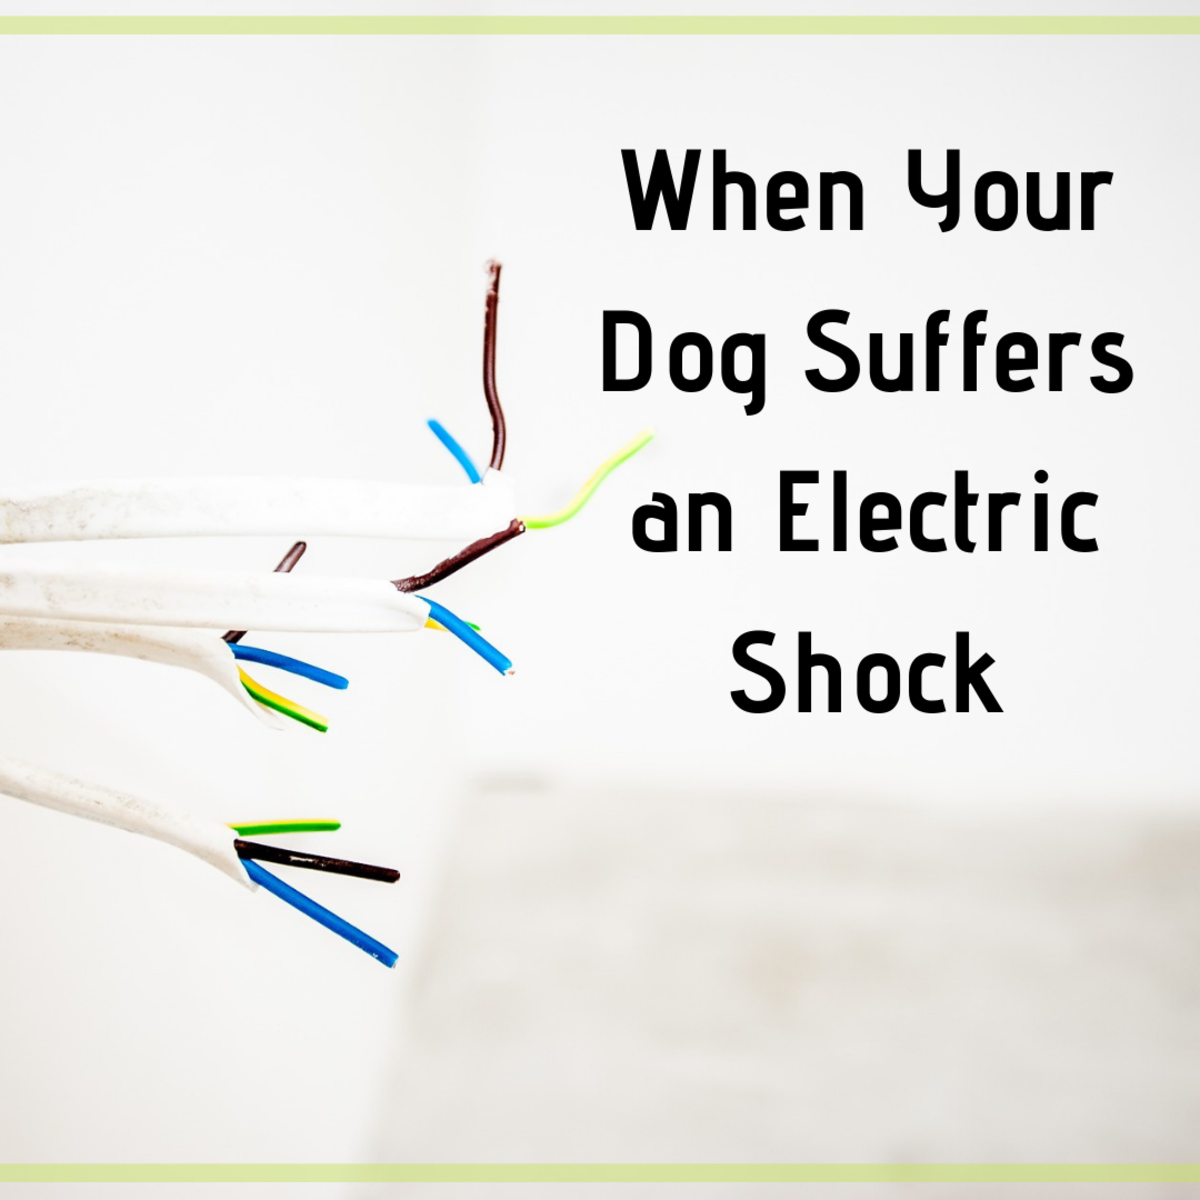 Call your vet if your dog is electrocuted or shocked. Discover what else you can do in the meantime.